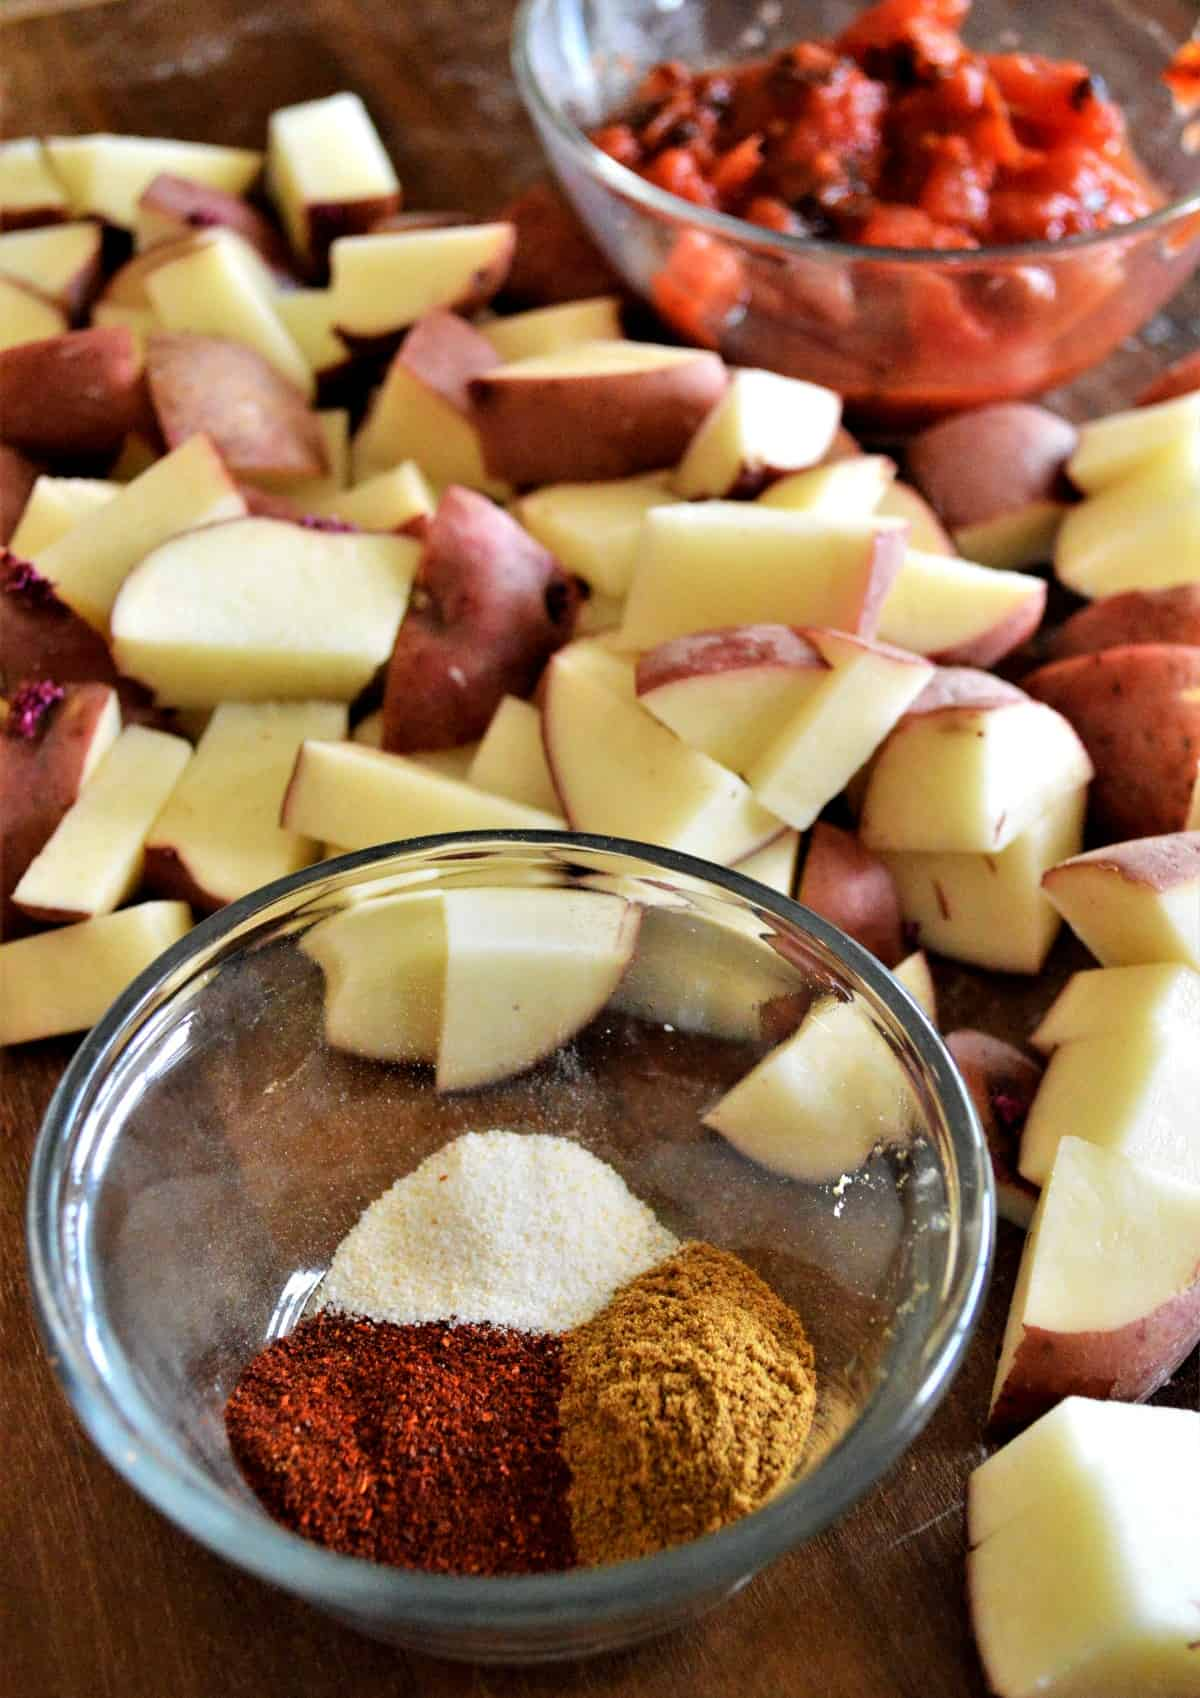 Cut red veggies in the background with a small bowl full of the recipes spices.